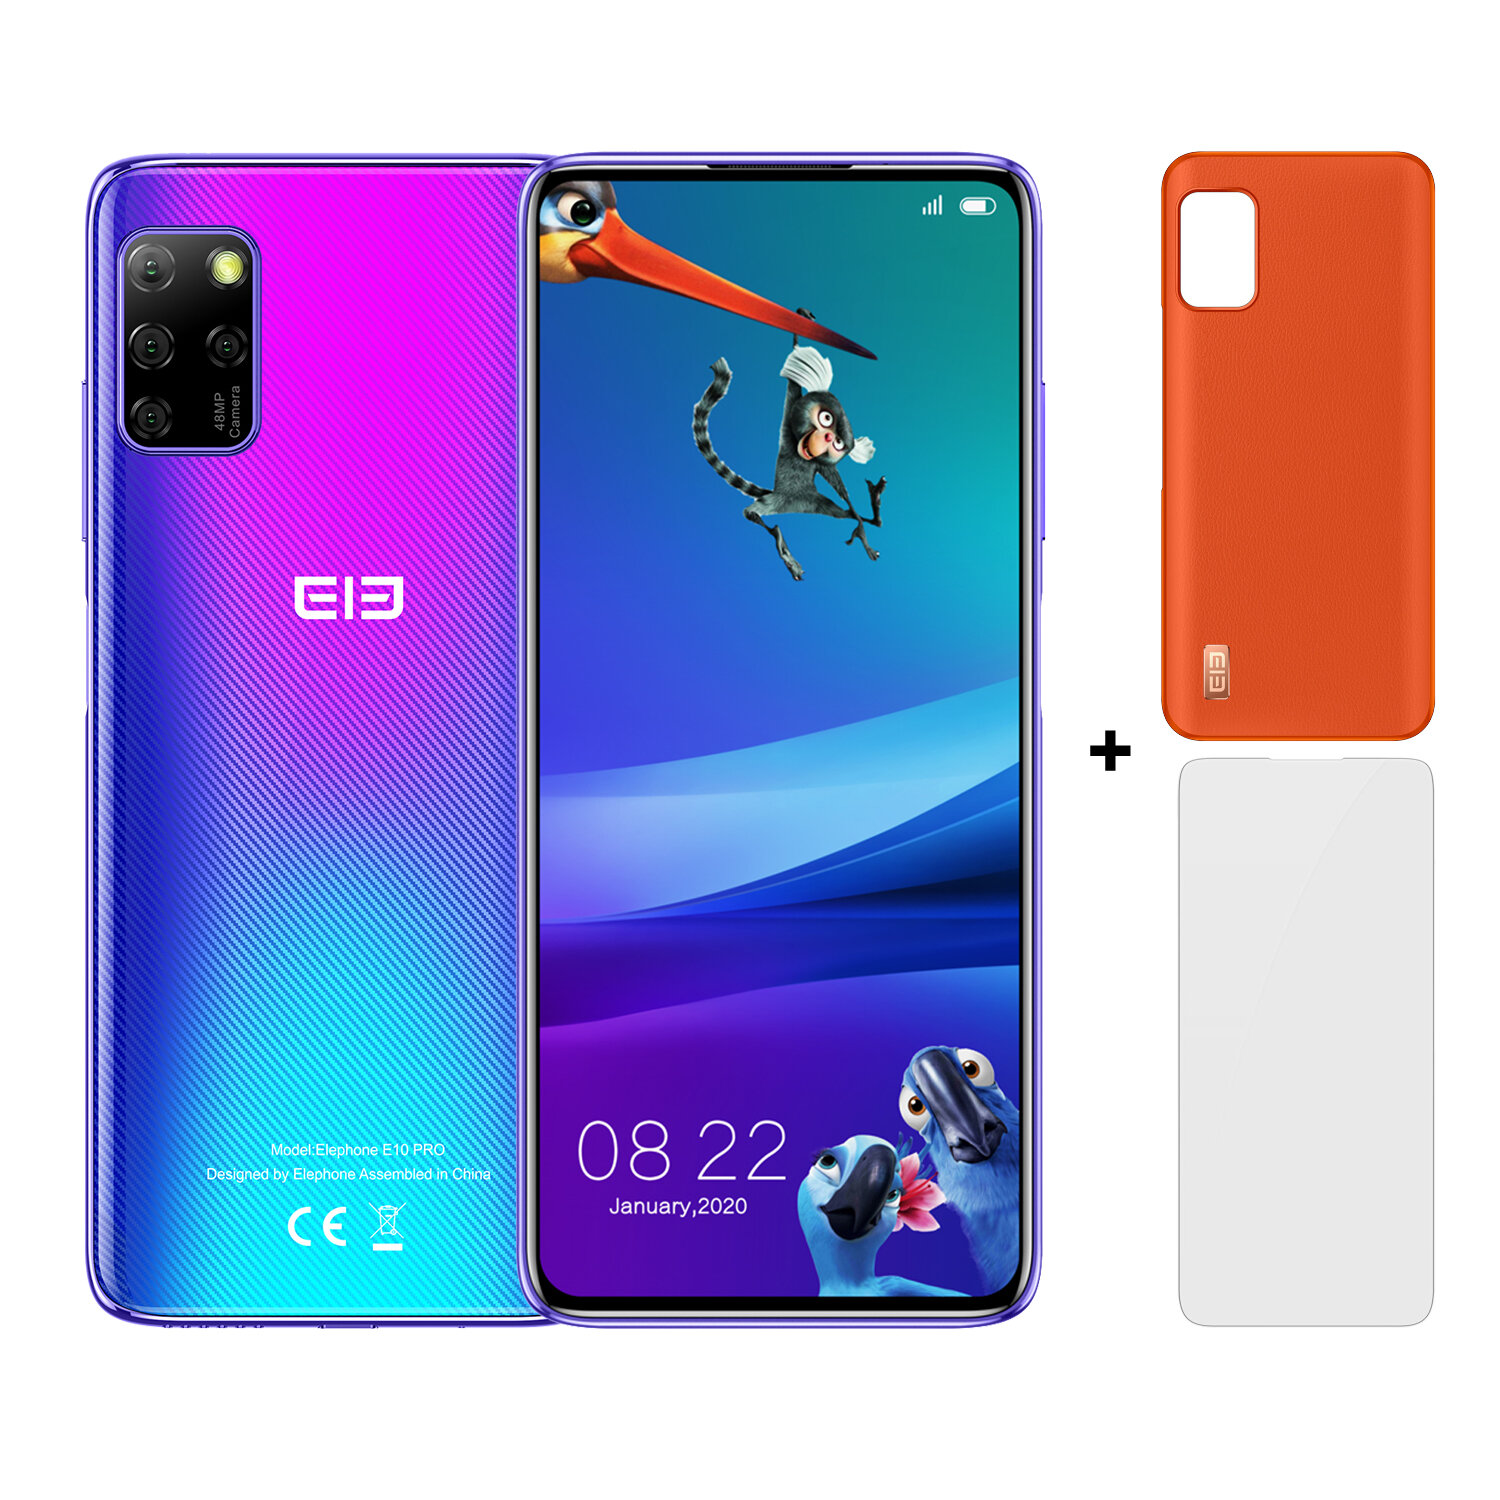 ELEPHONE E10 Pro Add Accessory Global Version 6.55 inch Punch-hole Screen NFC Android 10.0 4000mAh 48MP Quad Rear Camera 4GB 128GB MT6762D 4G Smartphone